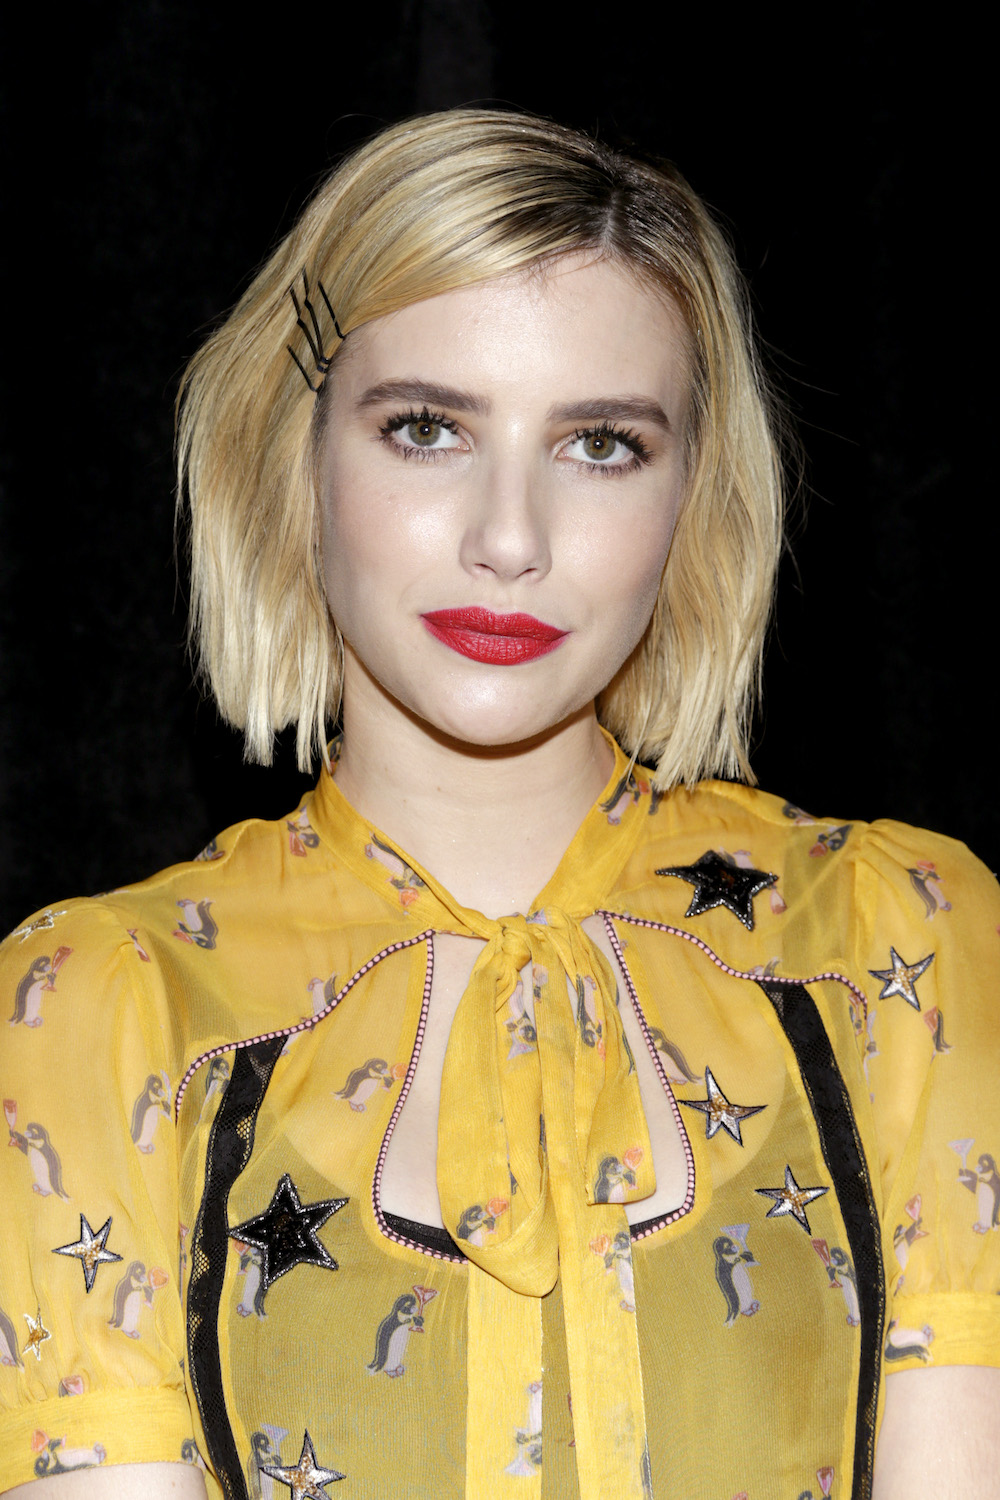 Emma Roberts Yellow Dress With Penguin Details Proves That It S Going To Be The New It Animal In Fashion Hellogiggles